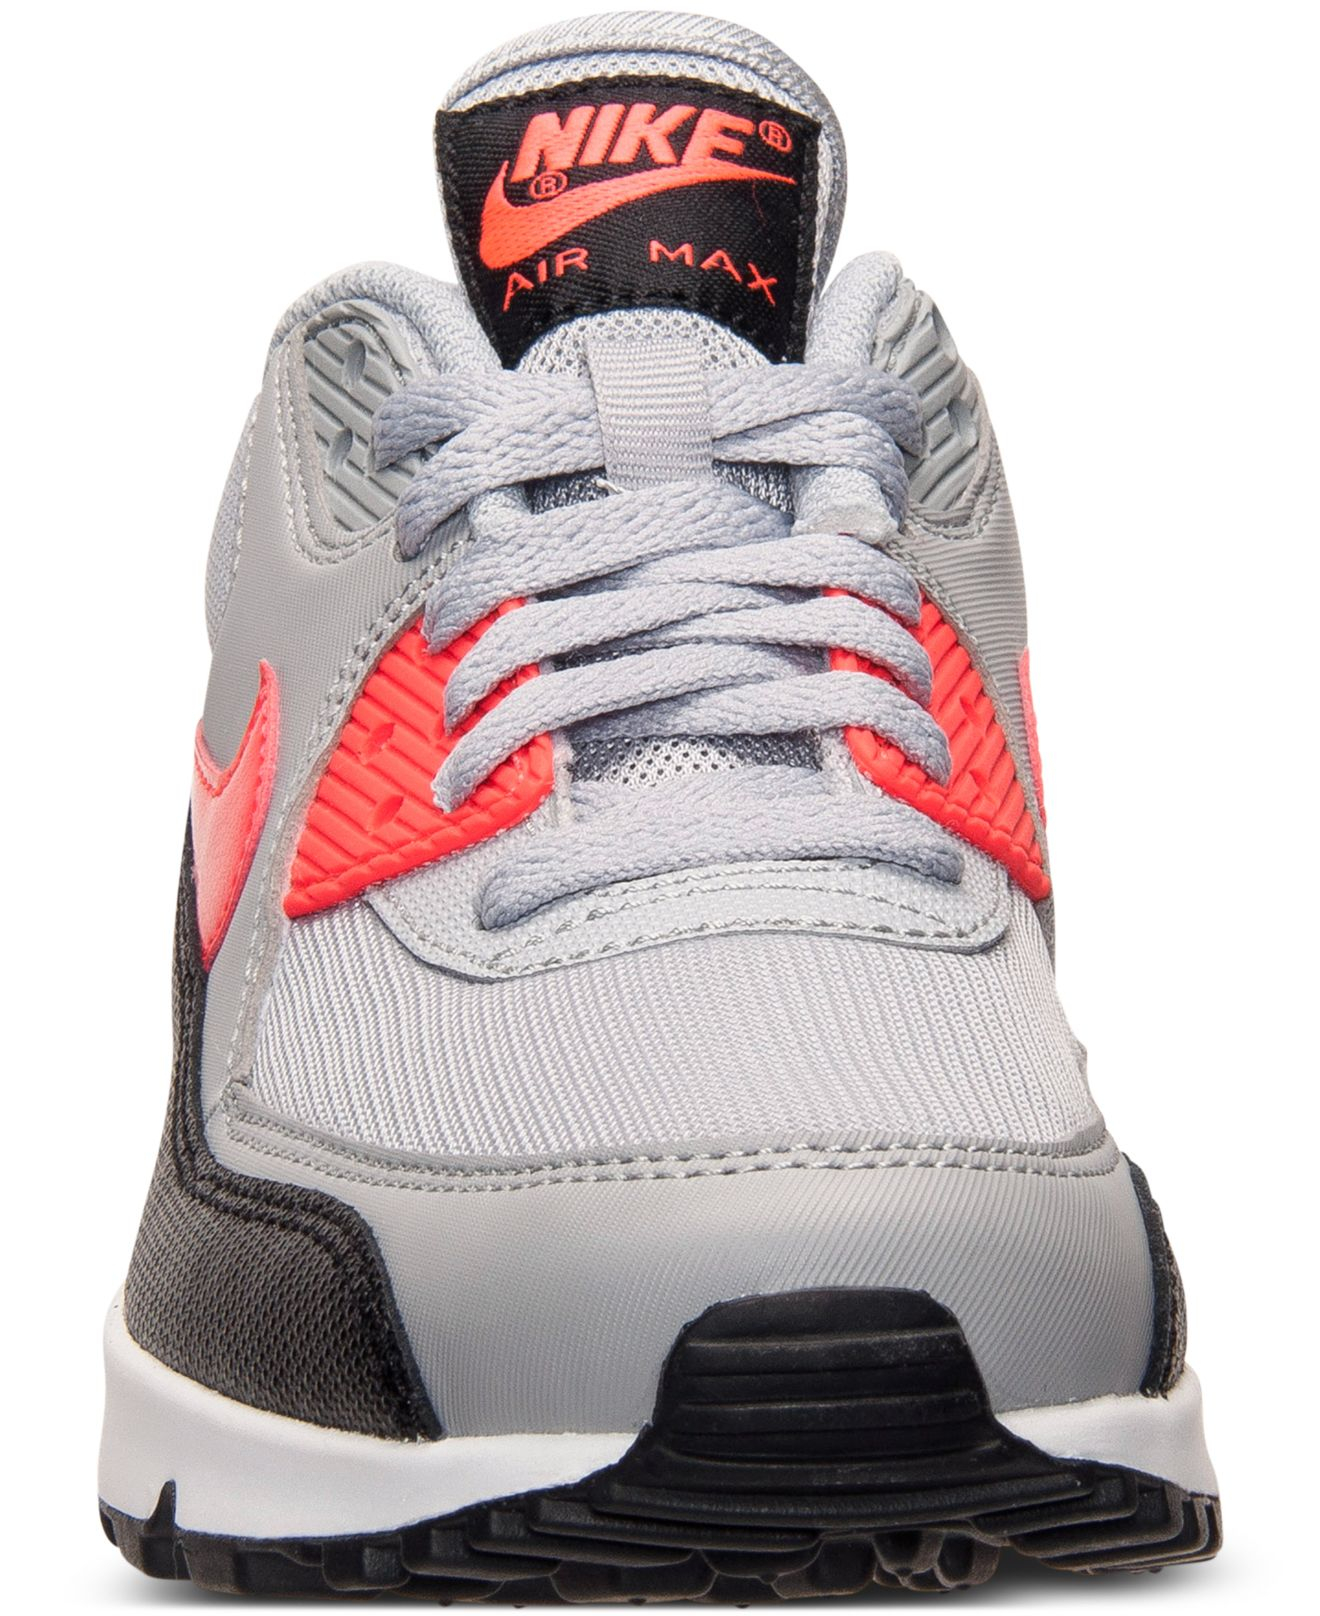 on sale c9b98 b4948 ... where can i buy lyst nike womens air max 90 essential running sneakers  from finish line